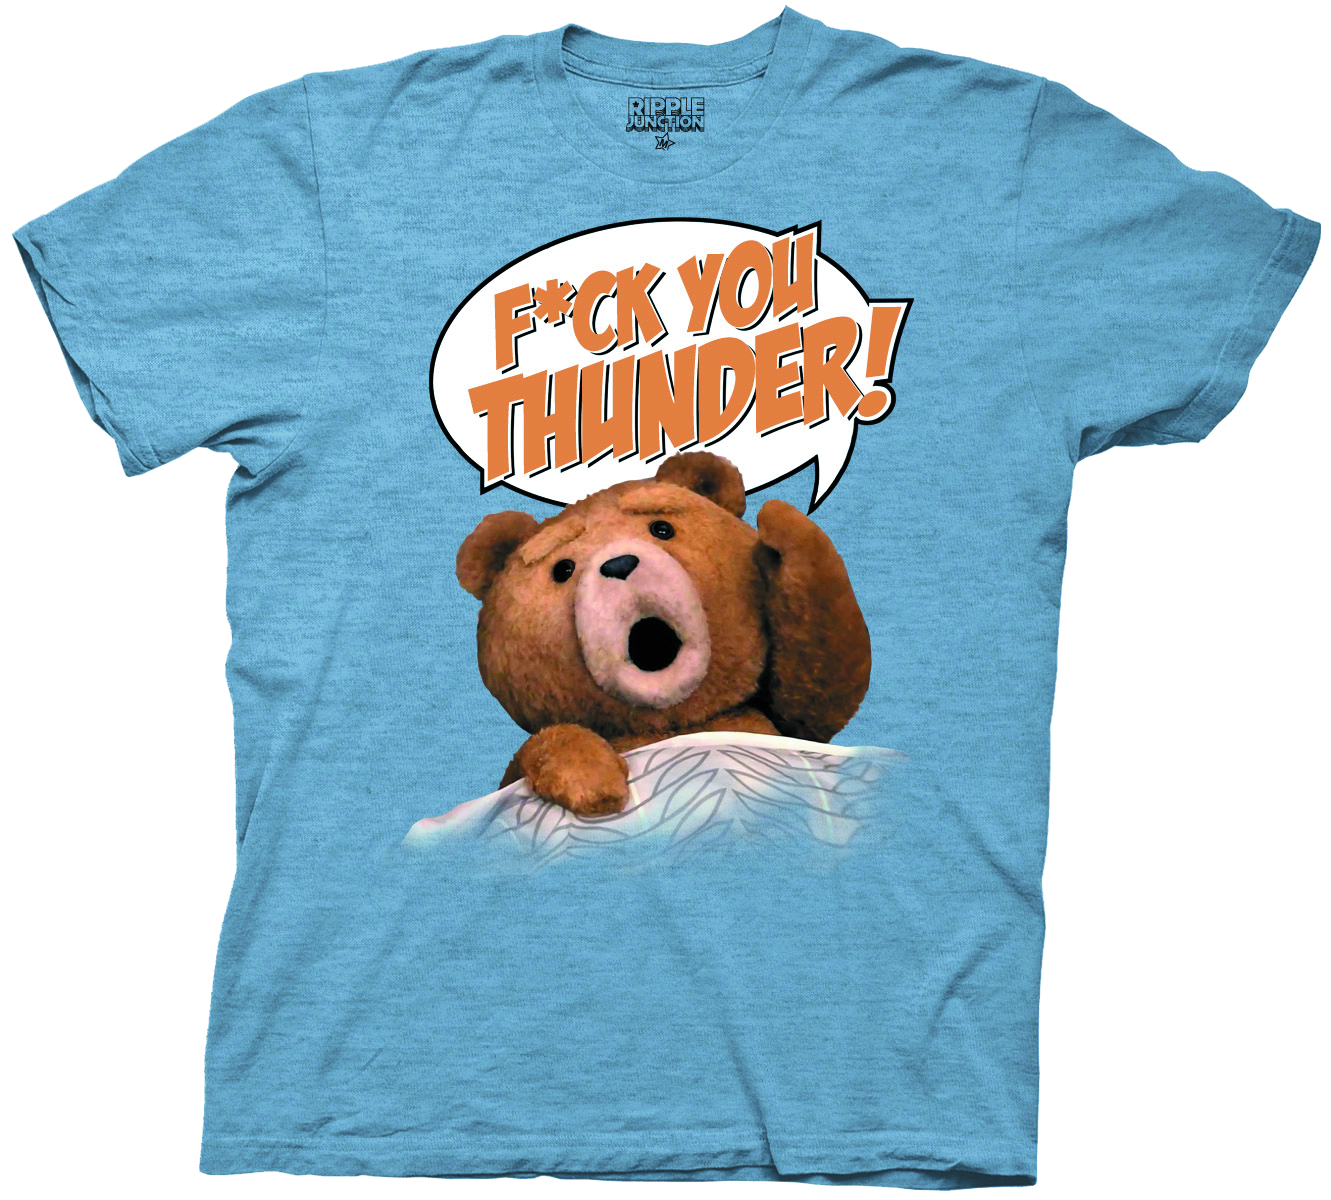 TED F*CK YOU THUNDER BLUE T/S MED